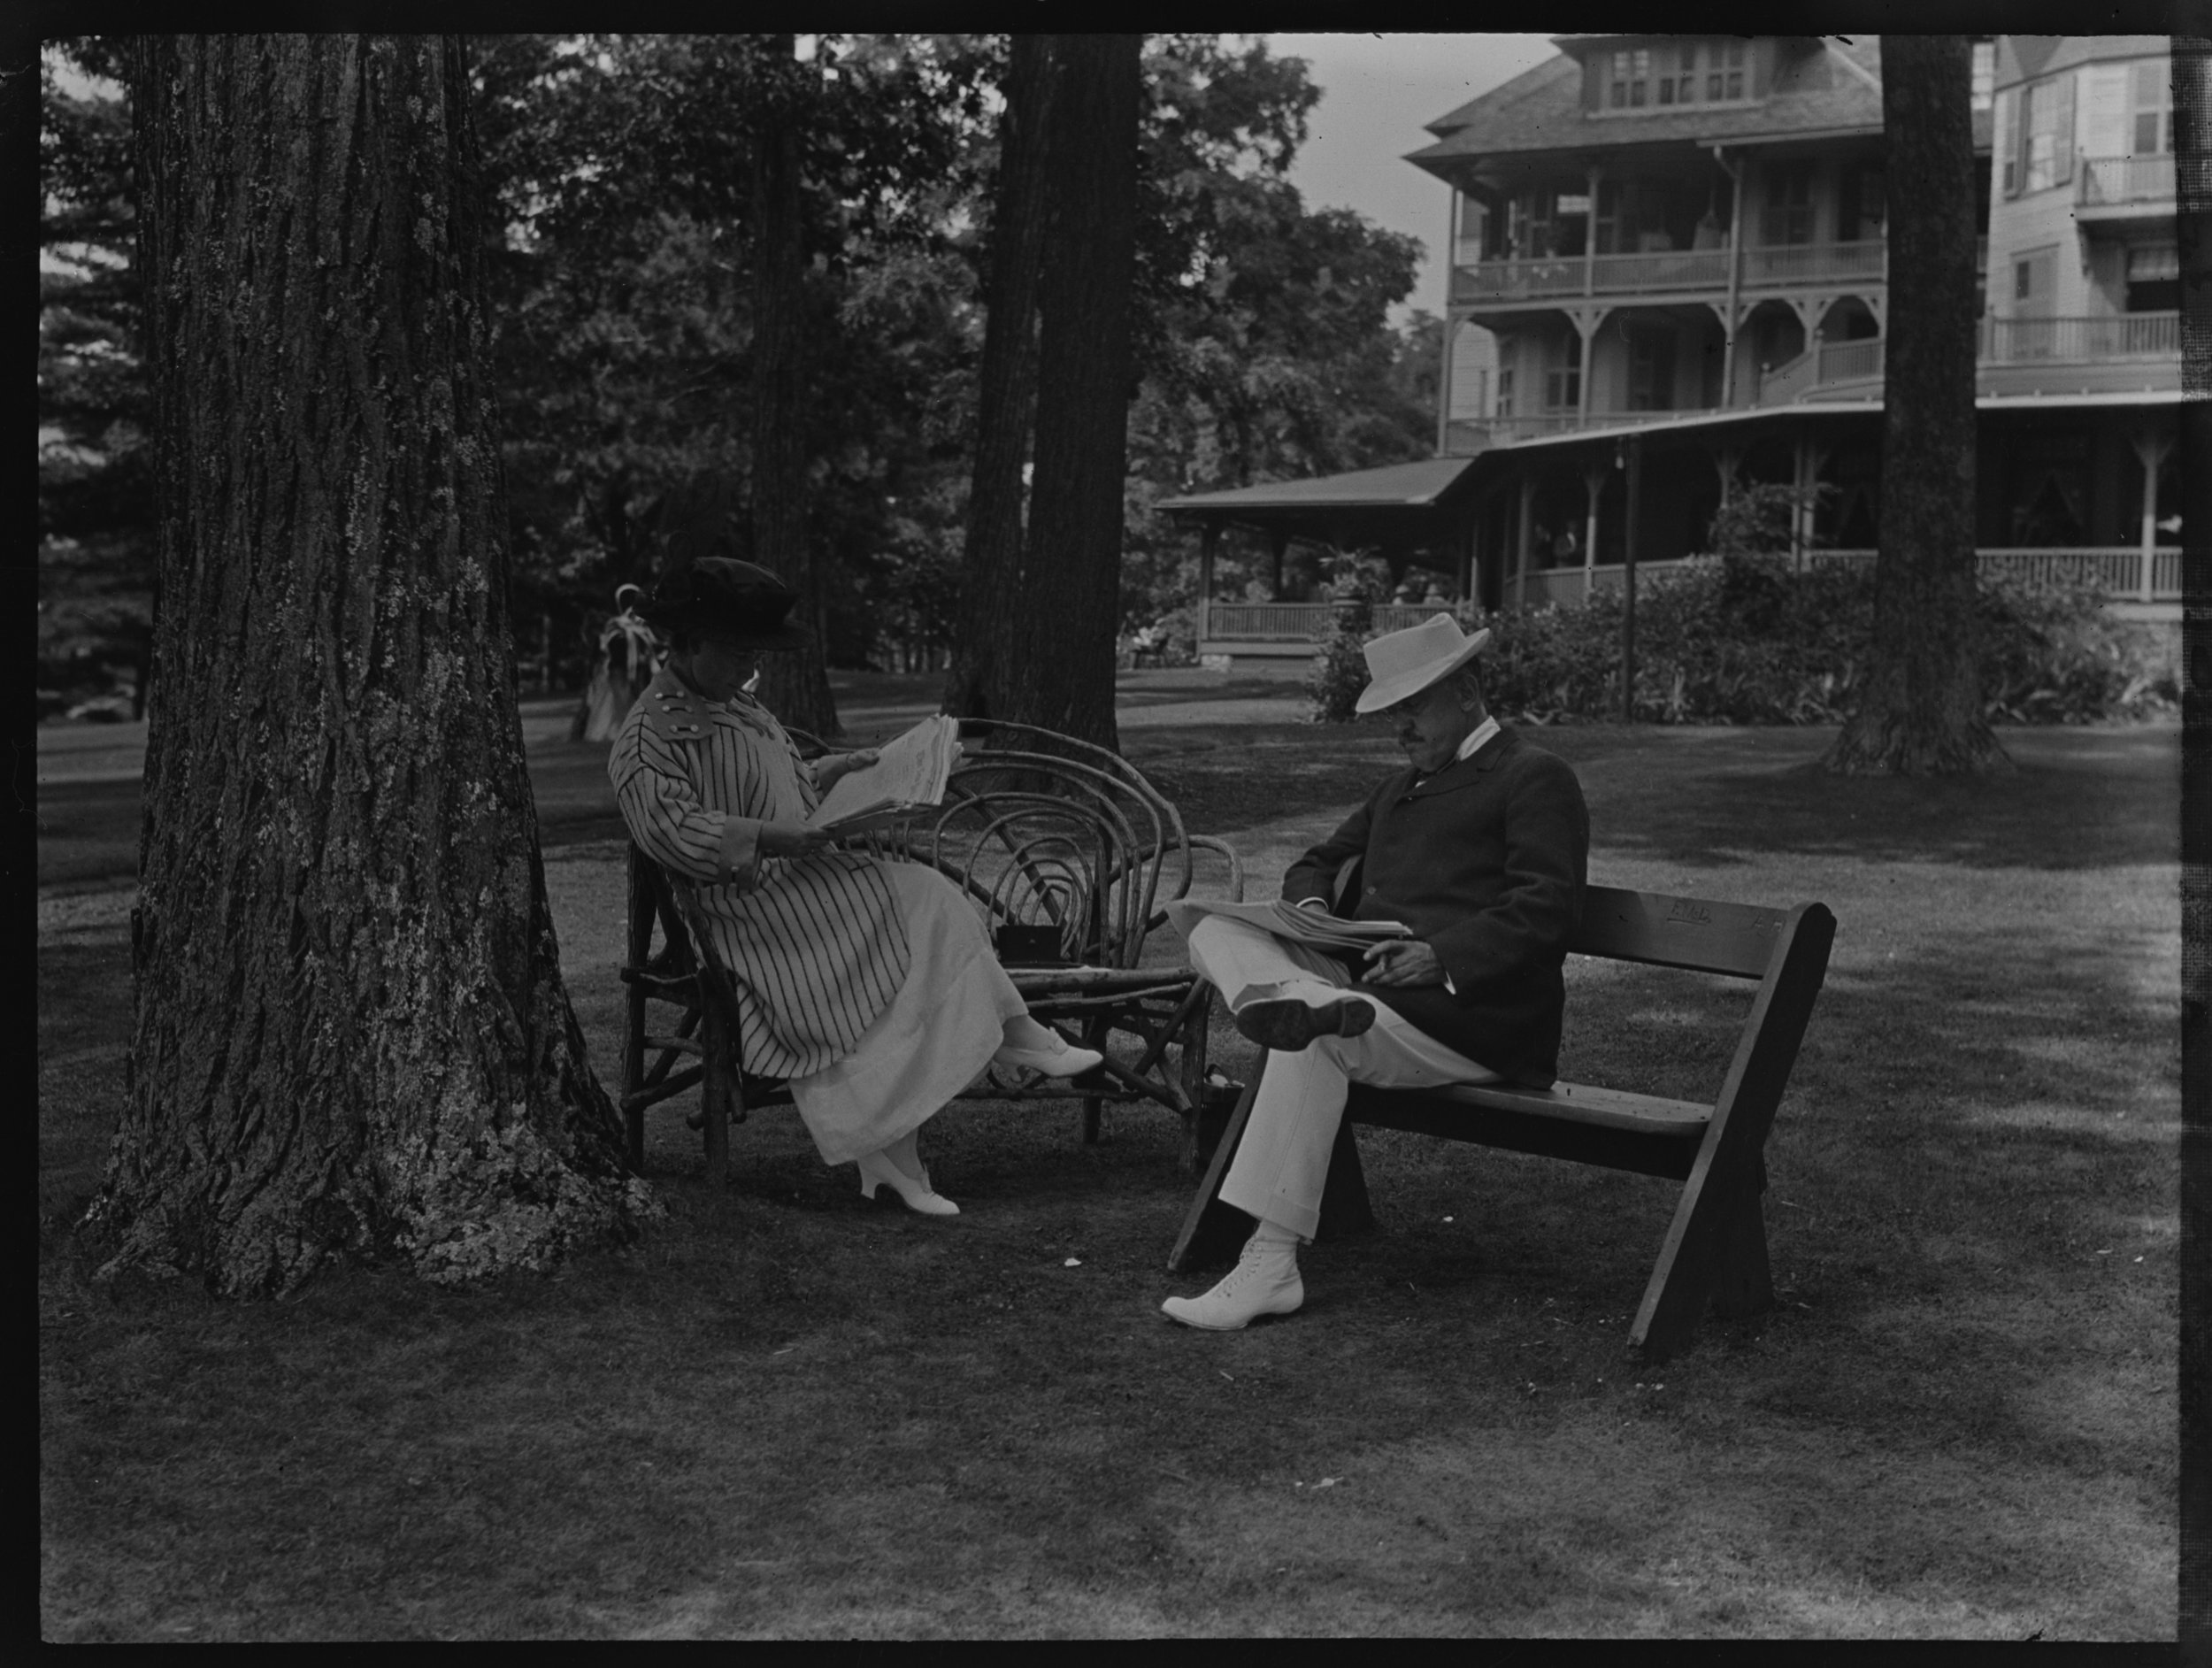 Guy Loomis and Gertrude Tate at the Sagamore Hotel, Lake George, New York, August 24, 1913